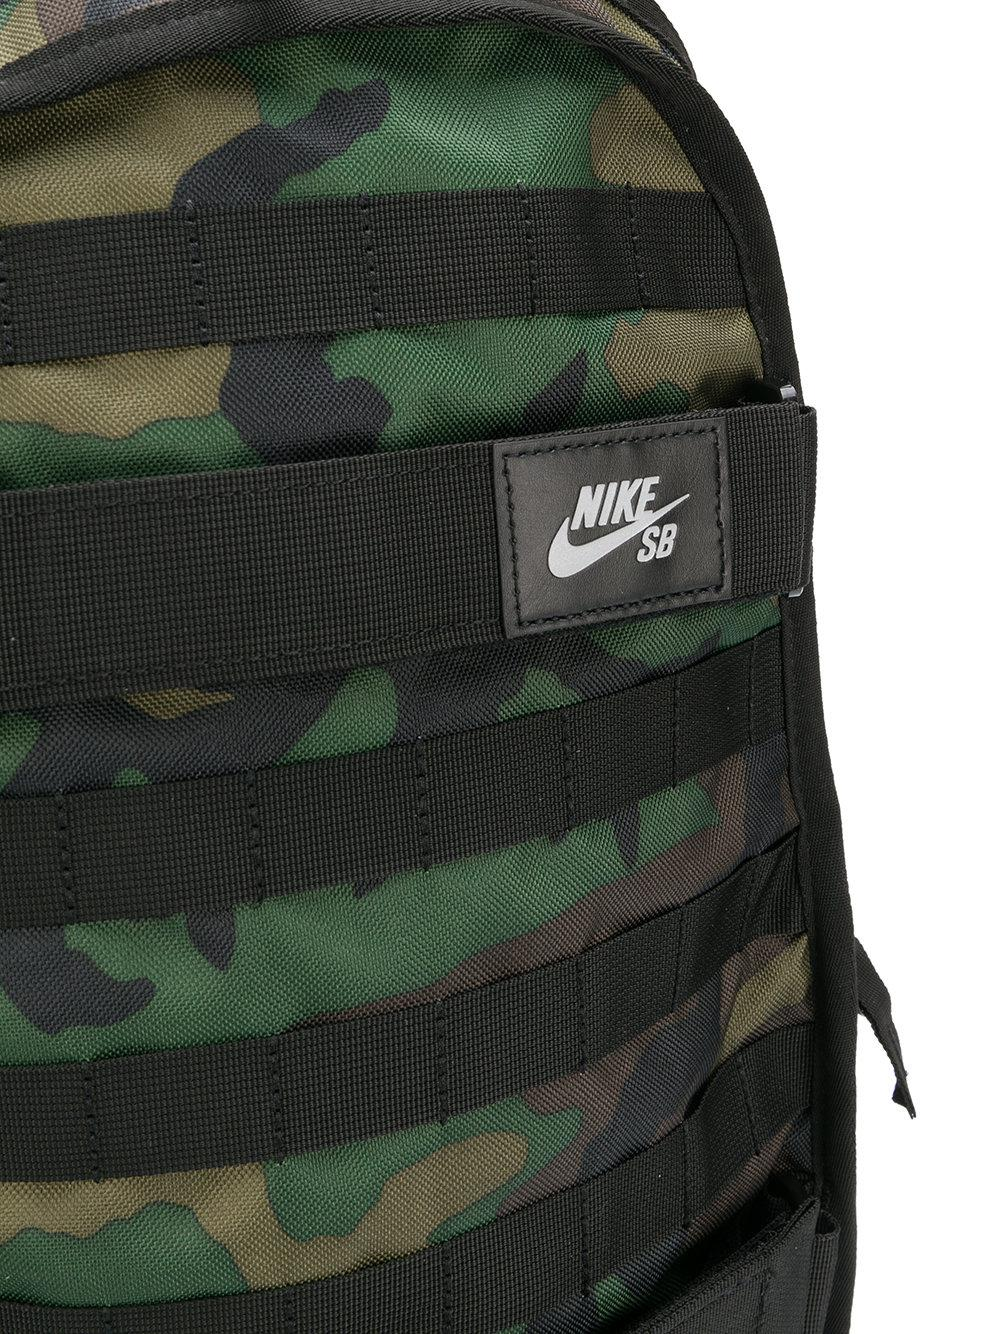 Nike Camouflage Backpack in Green for Men